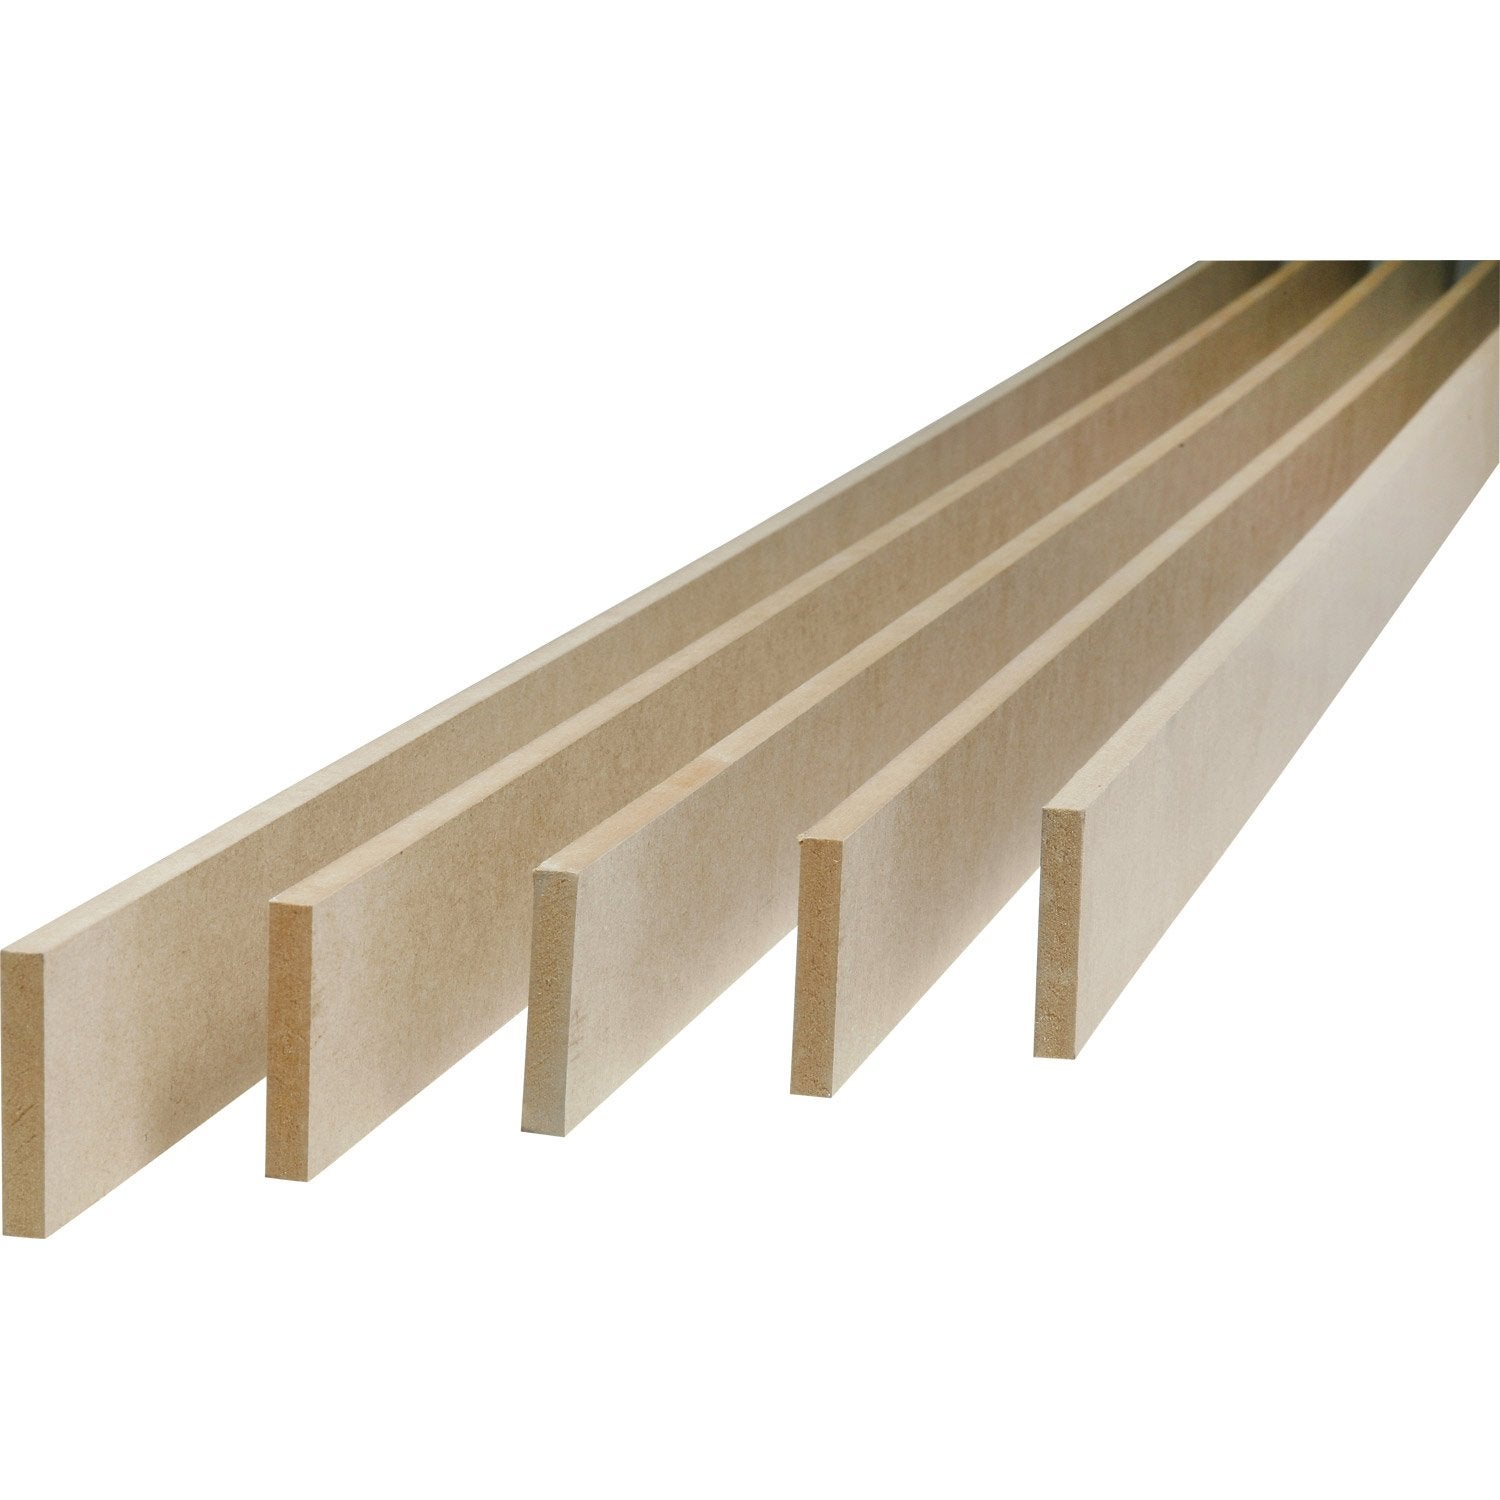 Lot de 5 plinthes m dium mdf r versibles 9 x 100 mm l - Plinthe bois sur carrelage ...